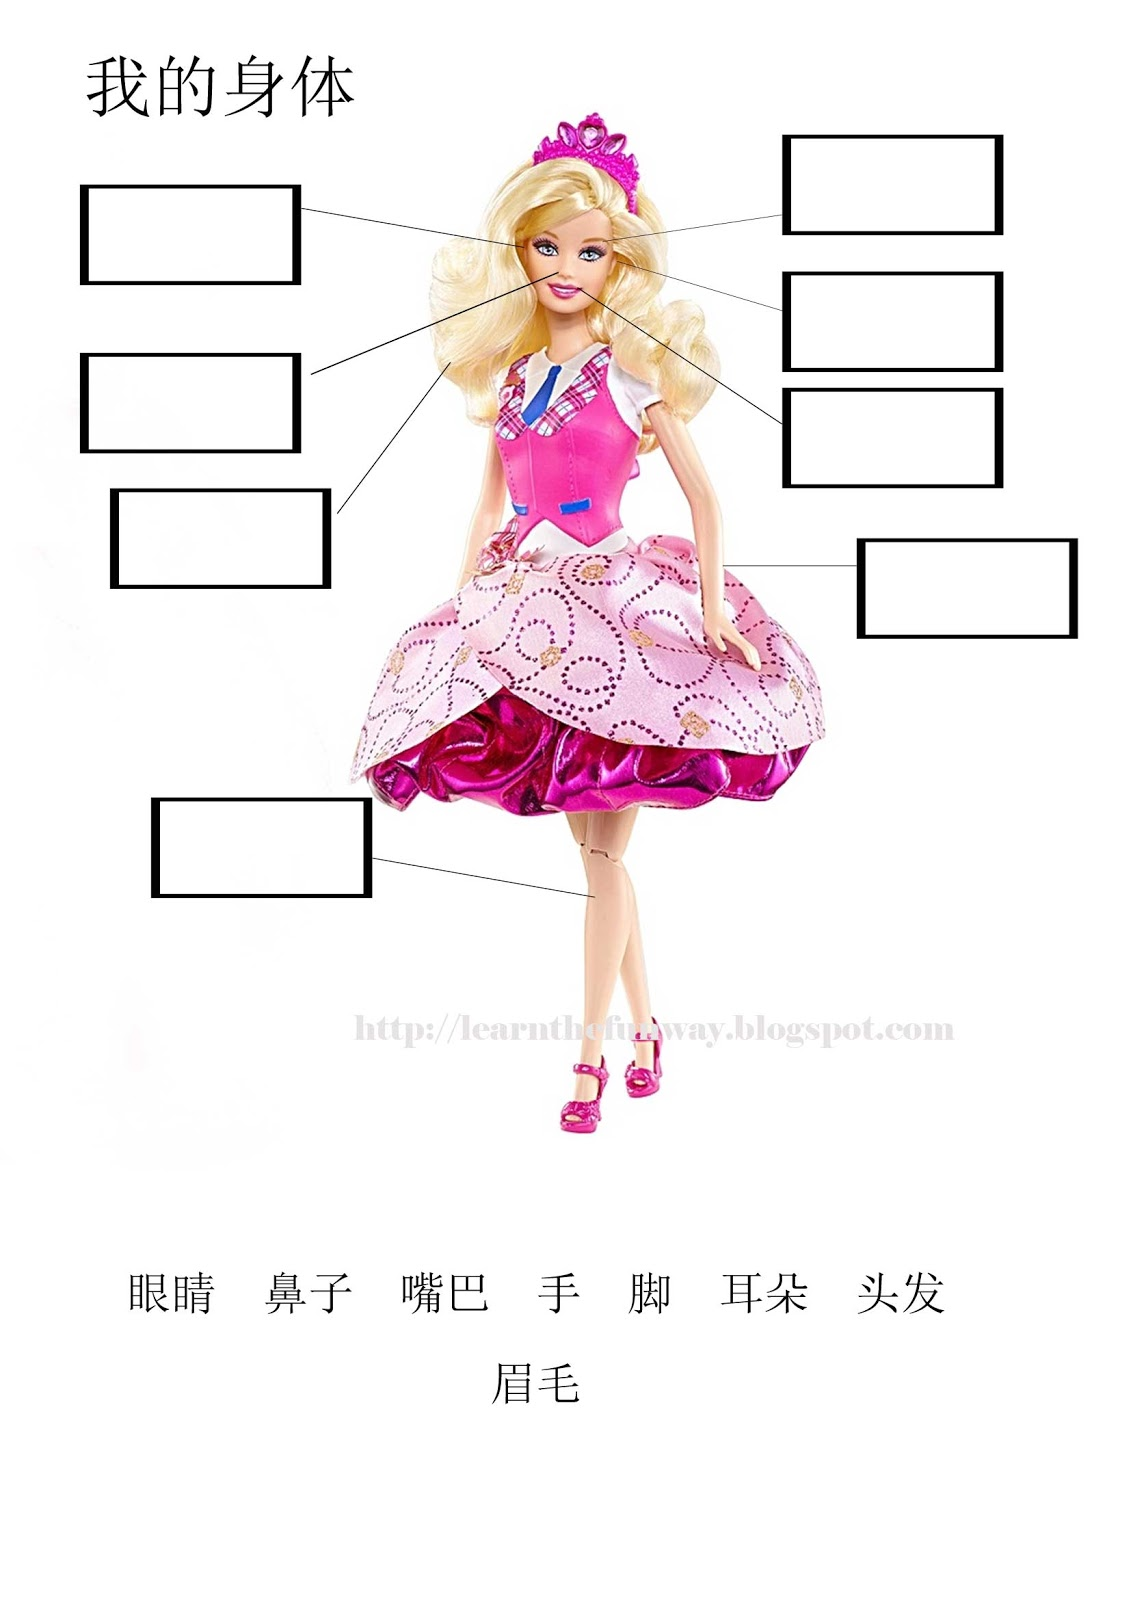 Label Parts Of Body Worksheets